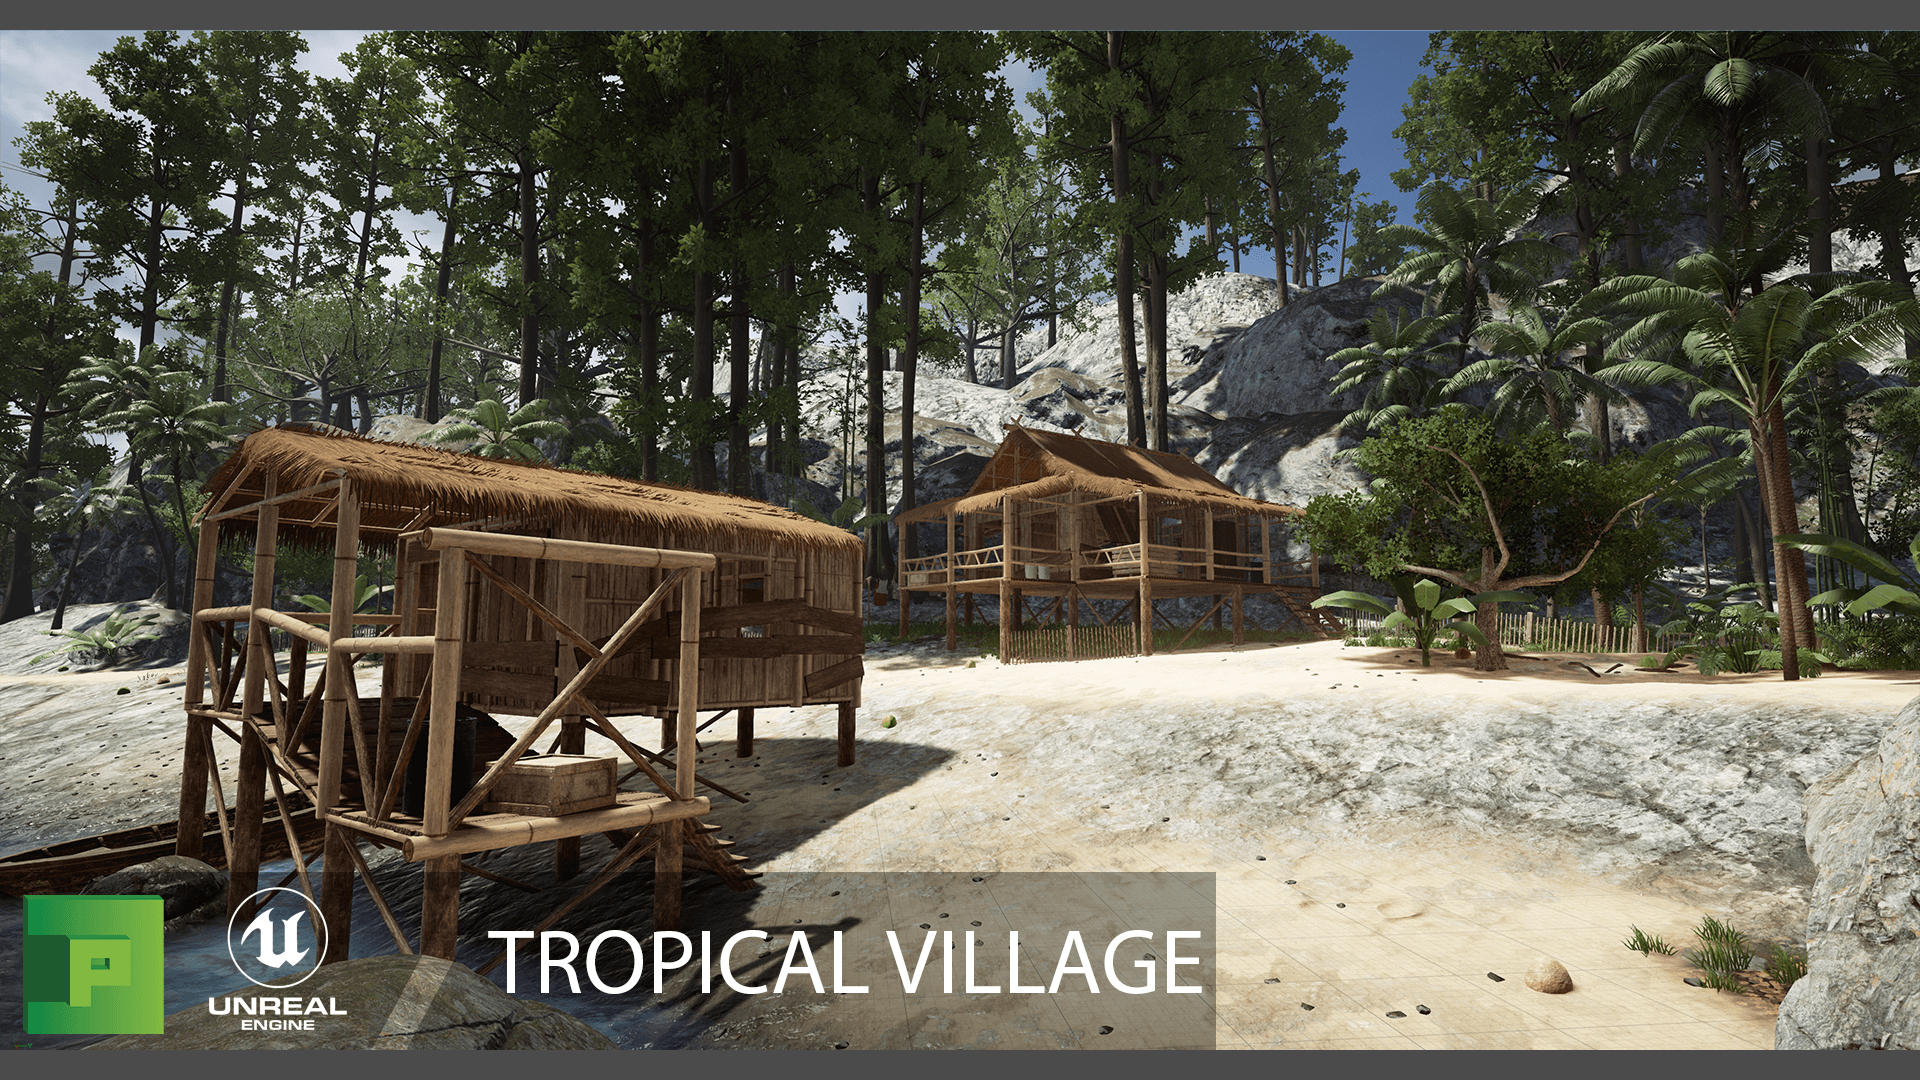 TropicalVillage_06